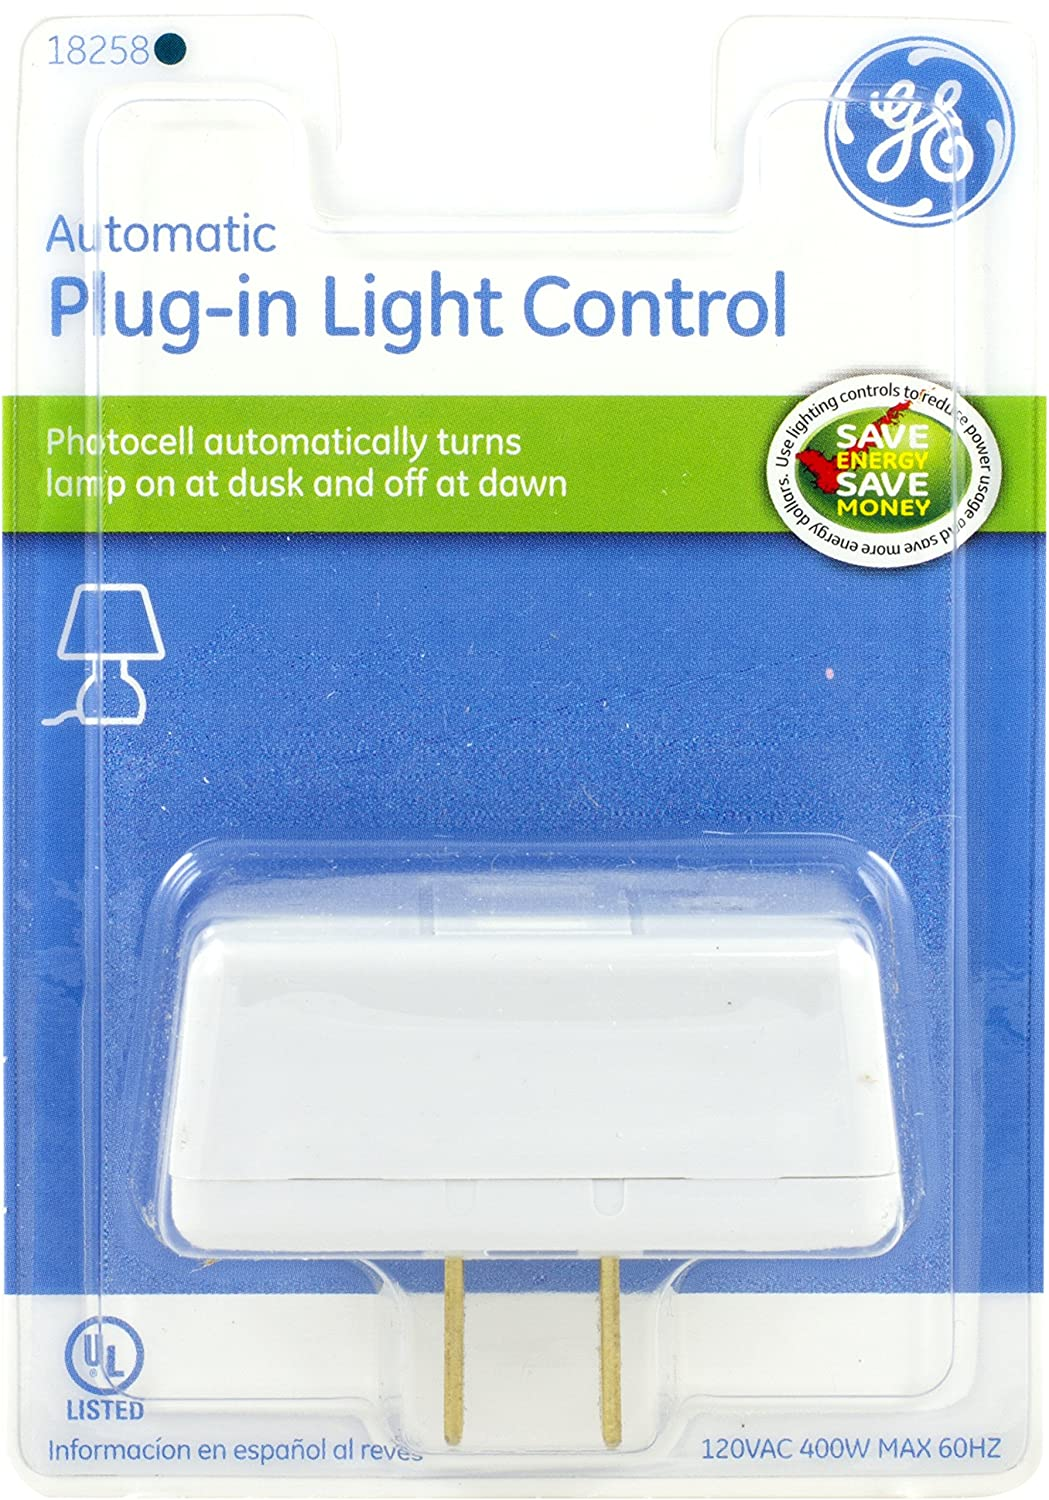 Automatic dusk to dawn light control - Ge Automatic Plug In Light Control Photocell On Off 18258 Led Household Light Bulbs Amazon Com